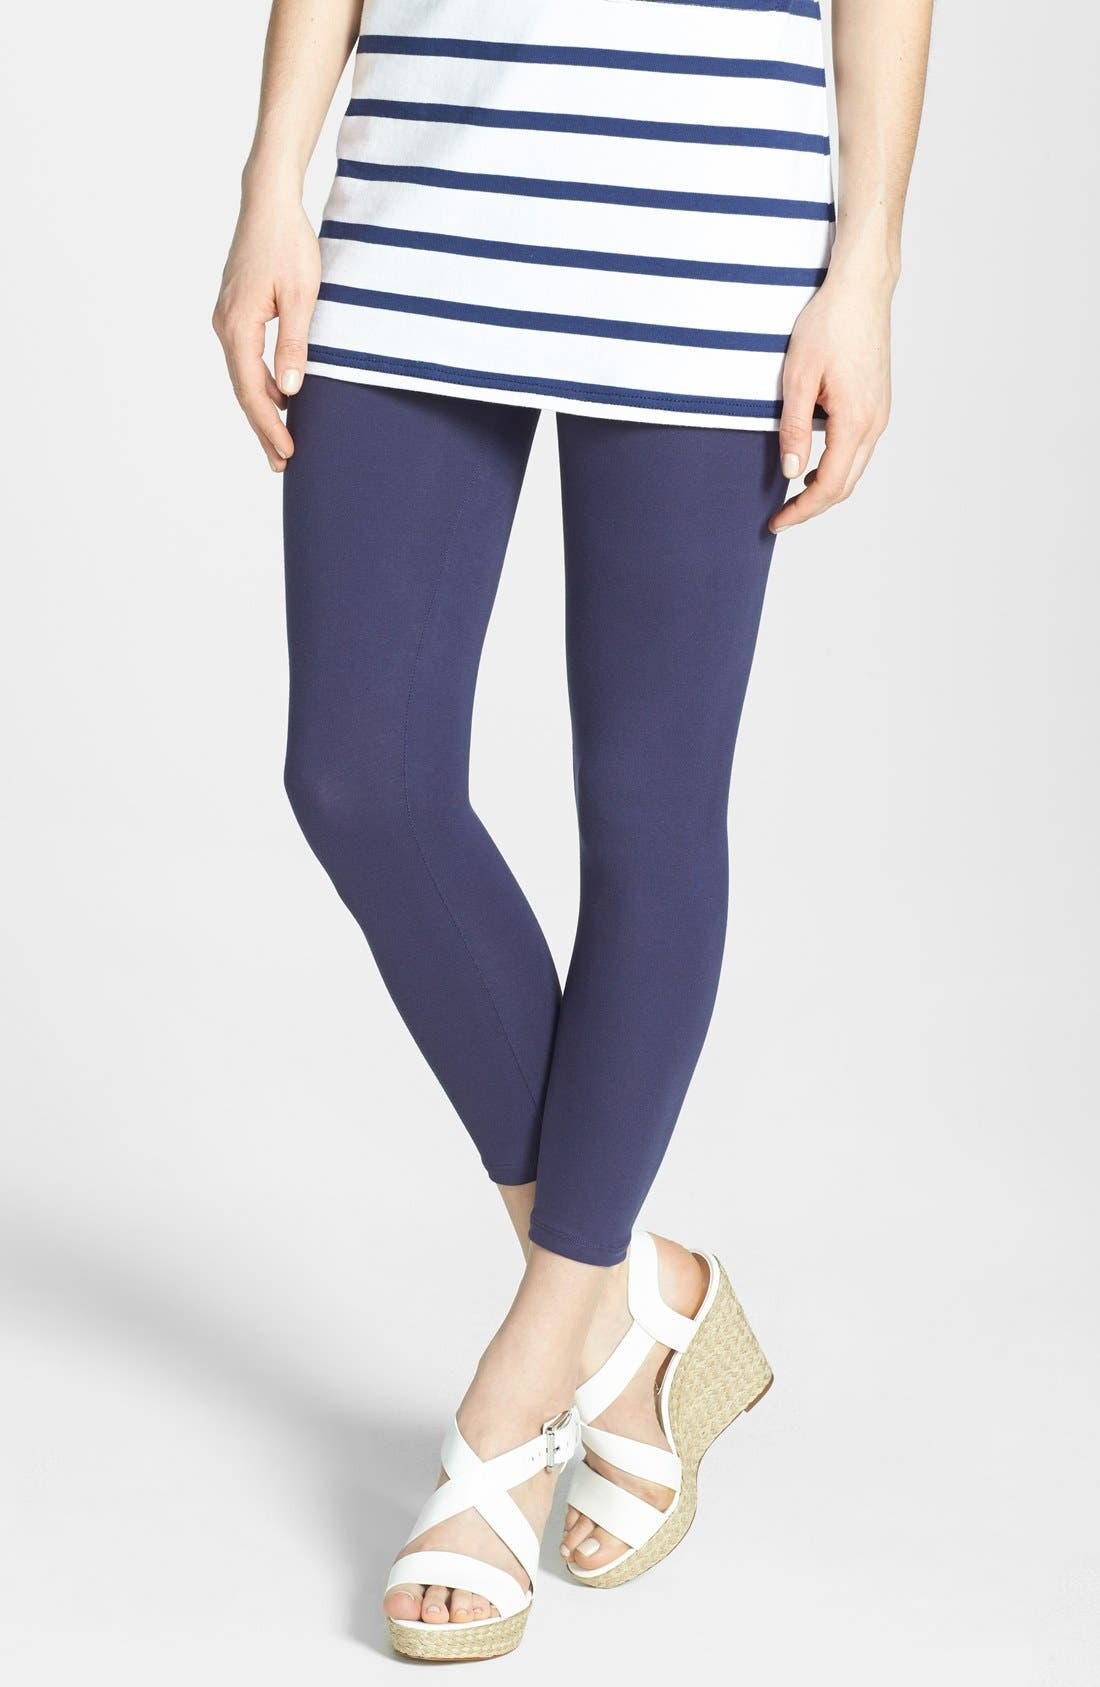 Main Image - Yummie by Heather Thomson 'Nora' Control Top Skimmer Leggings (Online Only)